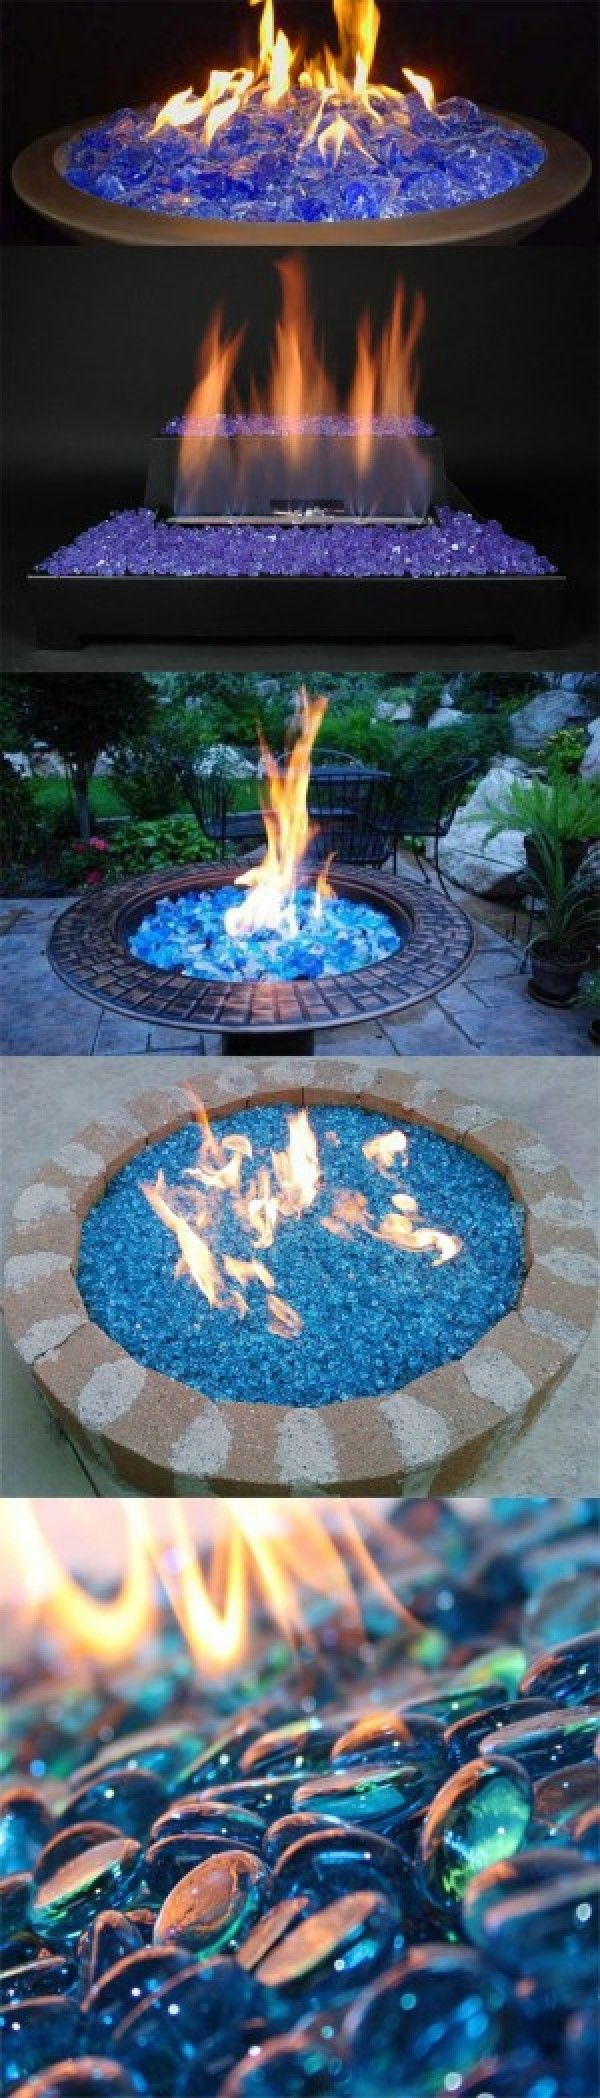 35 best diy garden and backyard images on pinterest barbecue